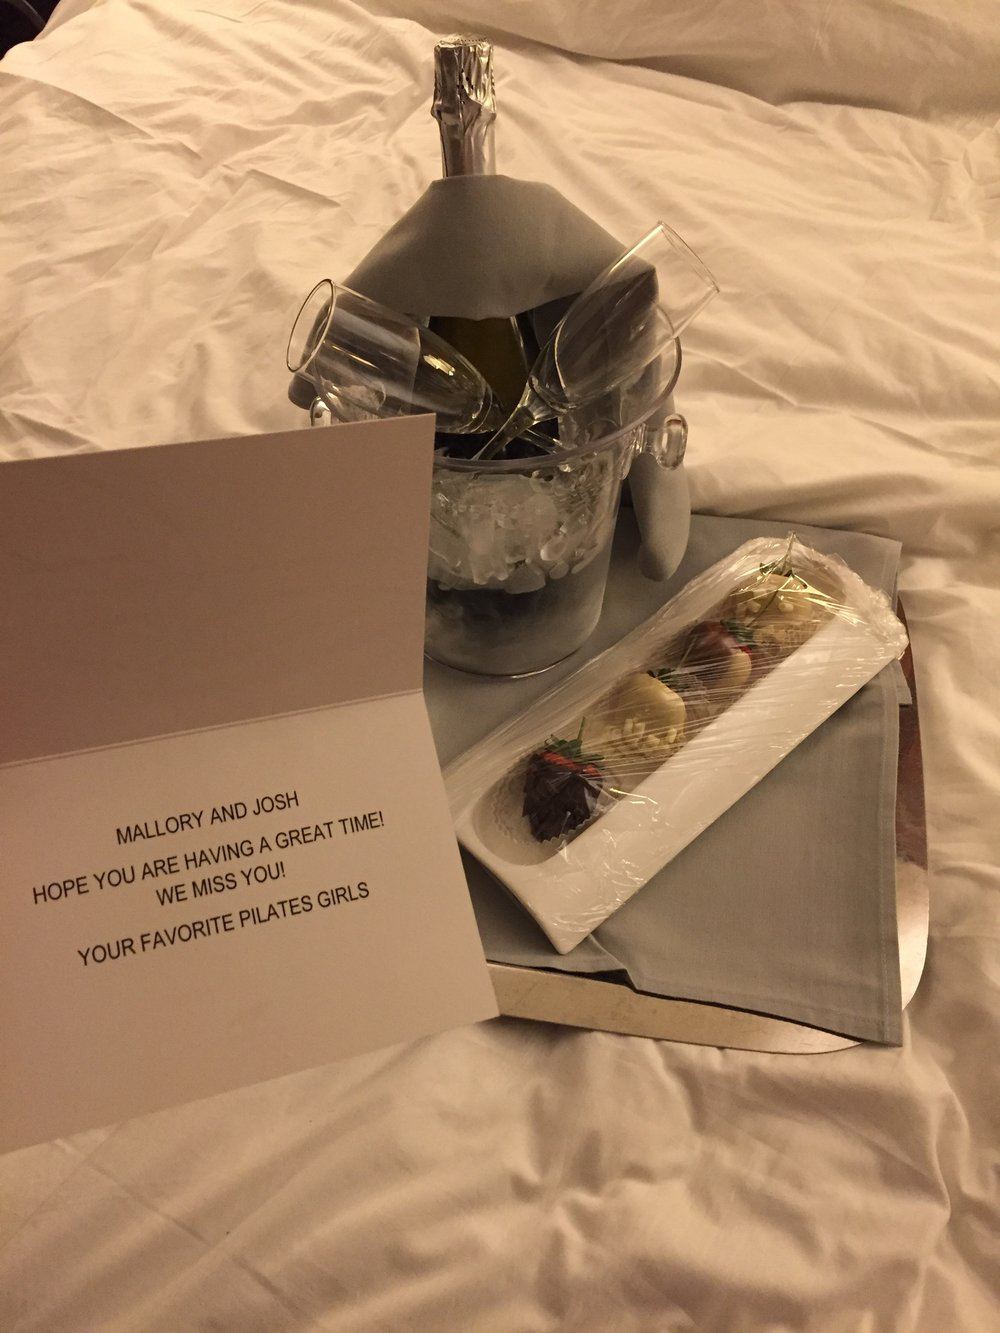 Josh and I got back to our room around 10:30 after having dinner at Crush in the MGM grand to this. HOW AMAZING ARE MY CLIENTS! :)